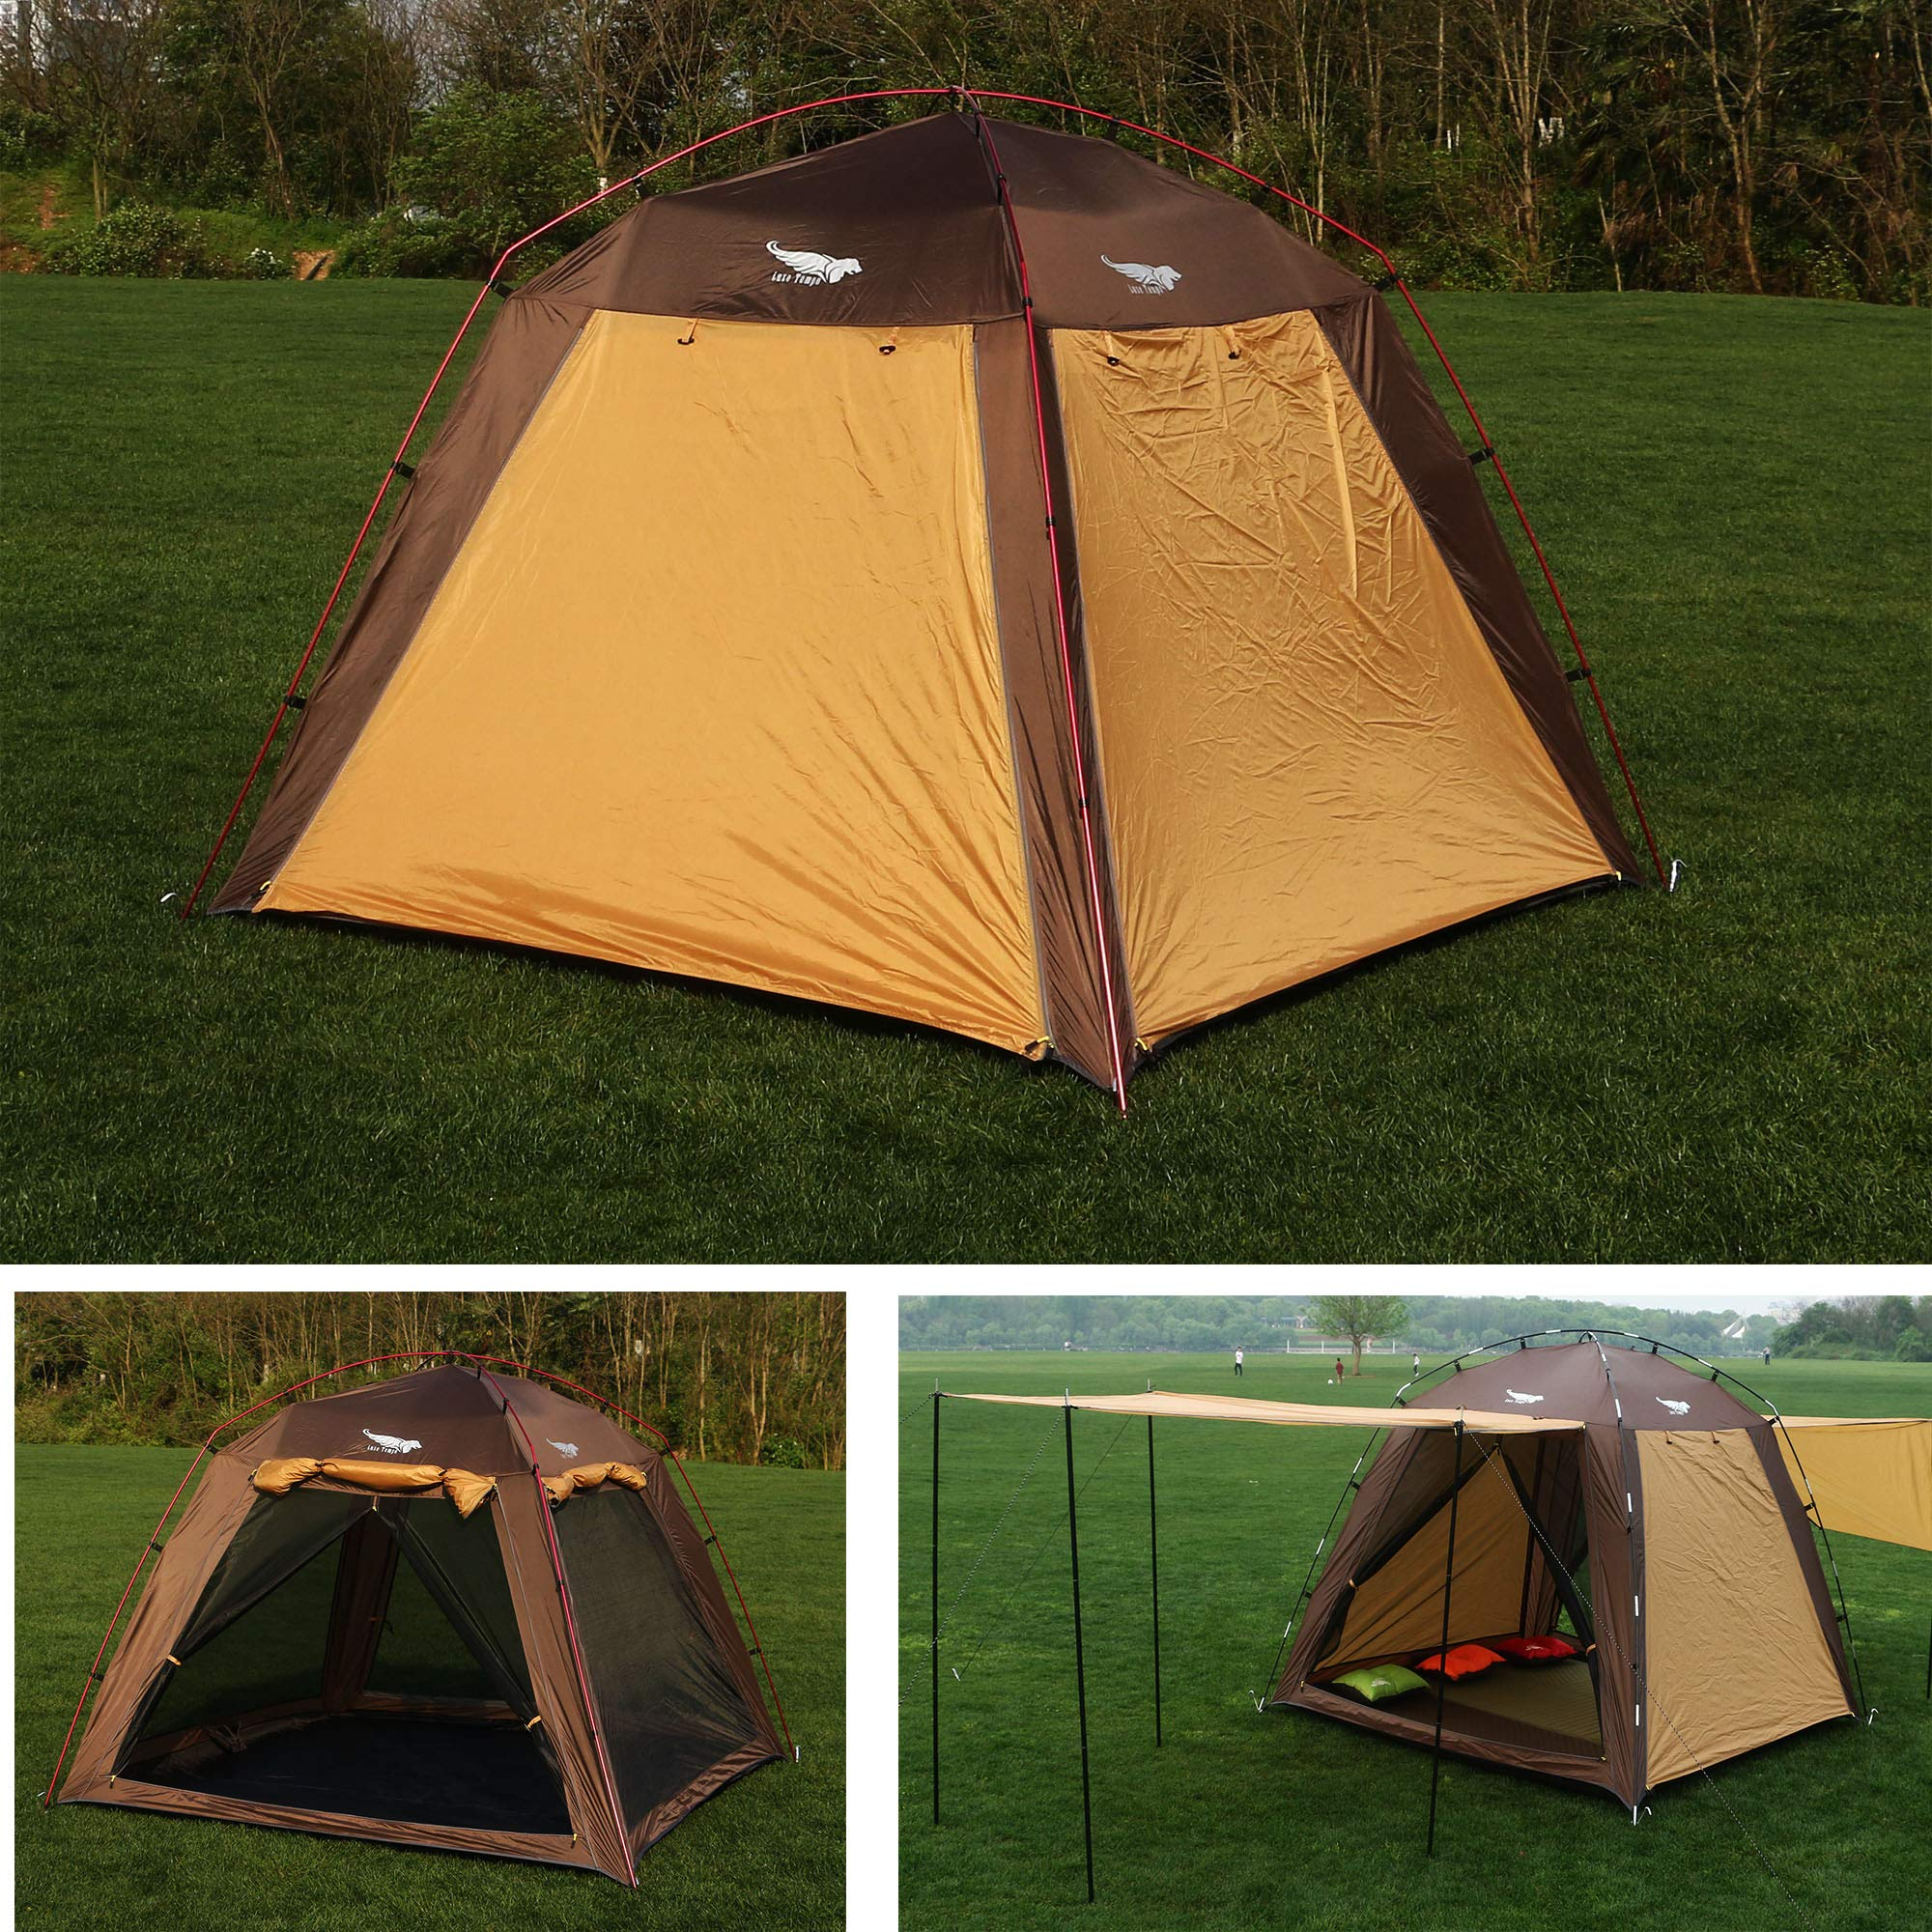 Luxe Tempo Screen House Tent 3-4 Person Canopy Tent Sun Shade Lightweight for Beach Backyard Camping Tall Fast Pitch by Luxe Tempo